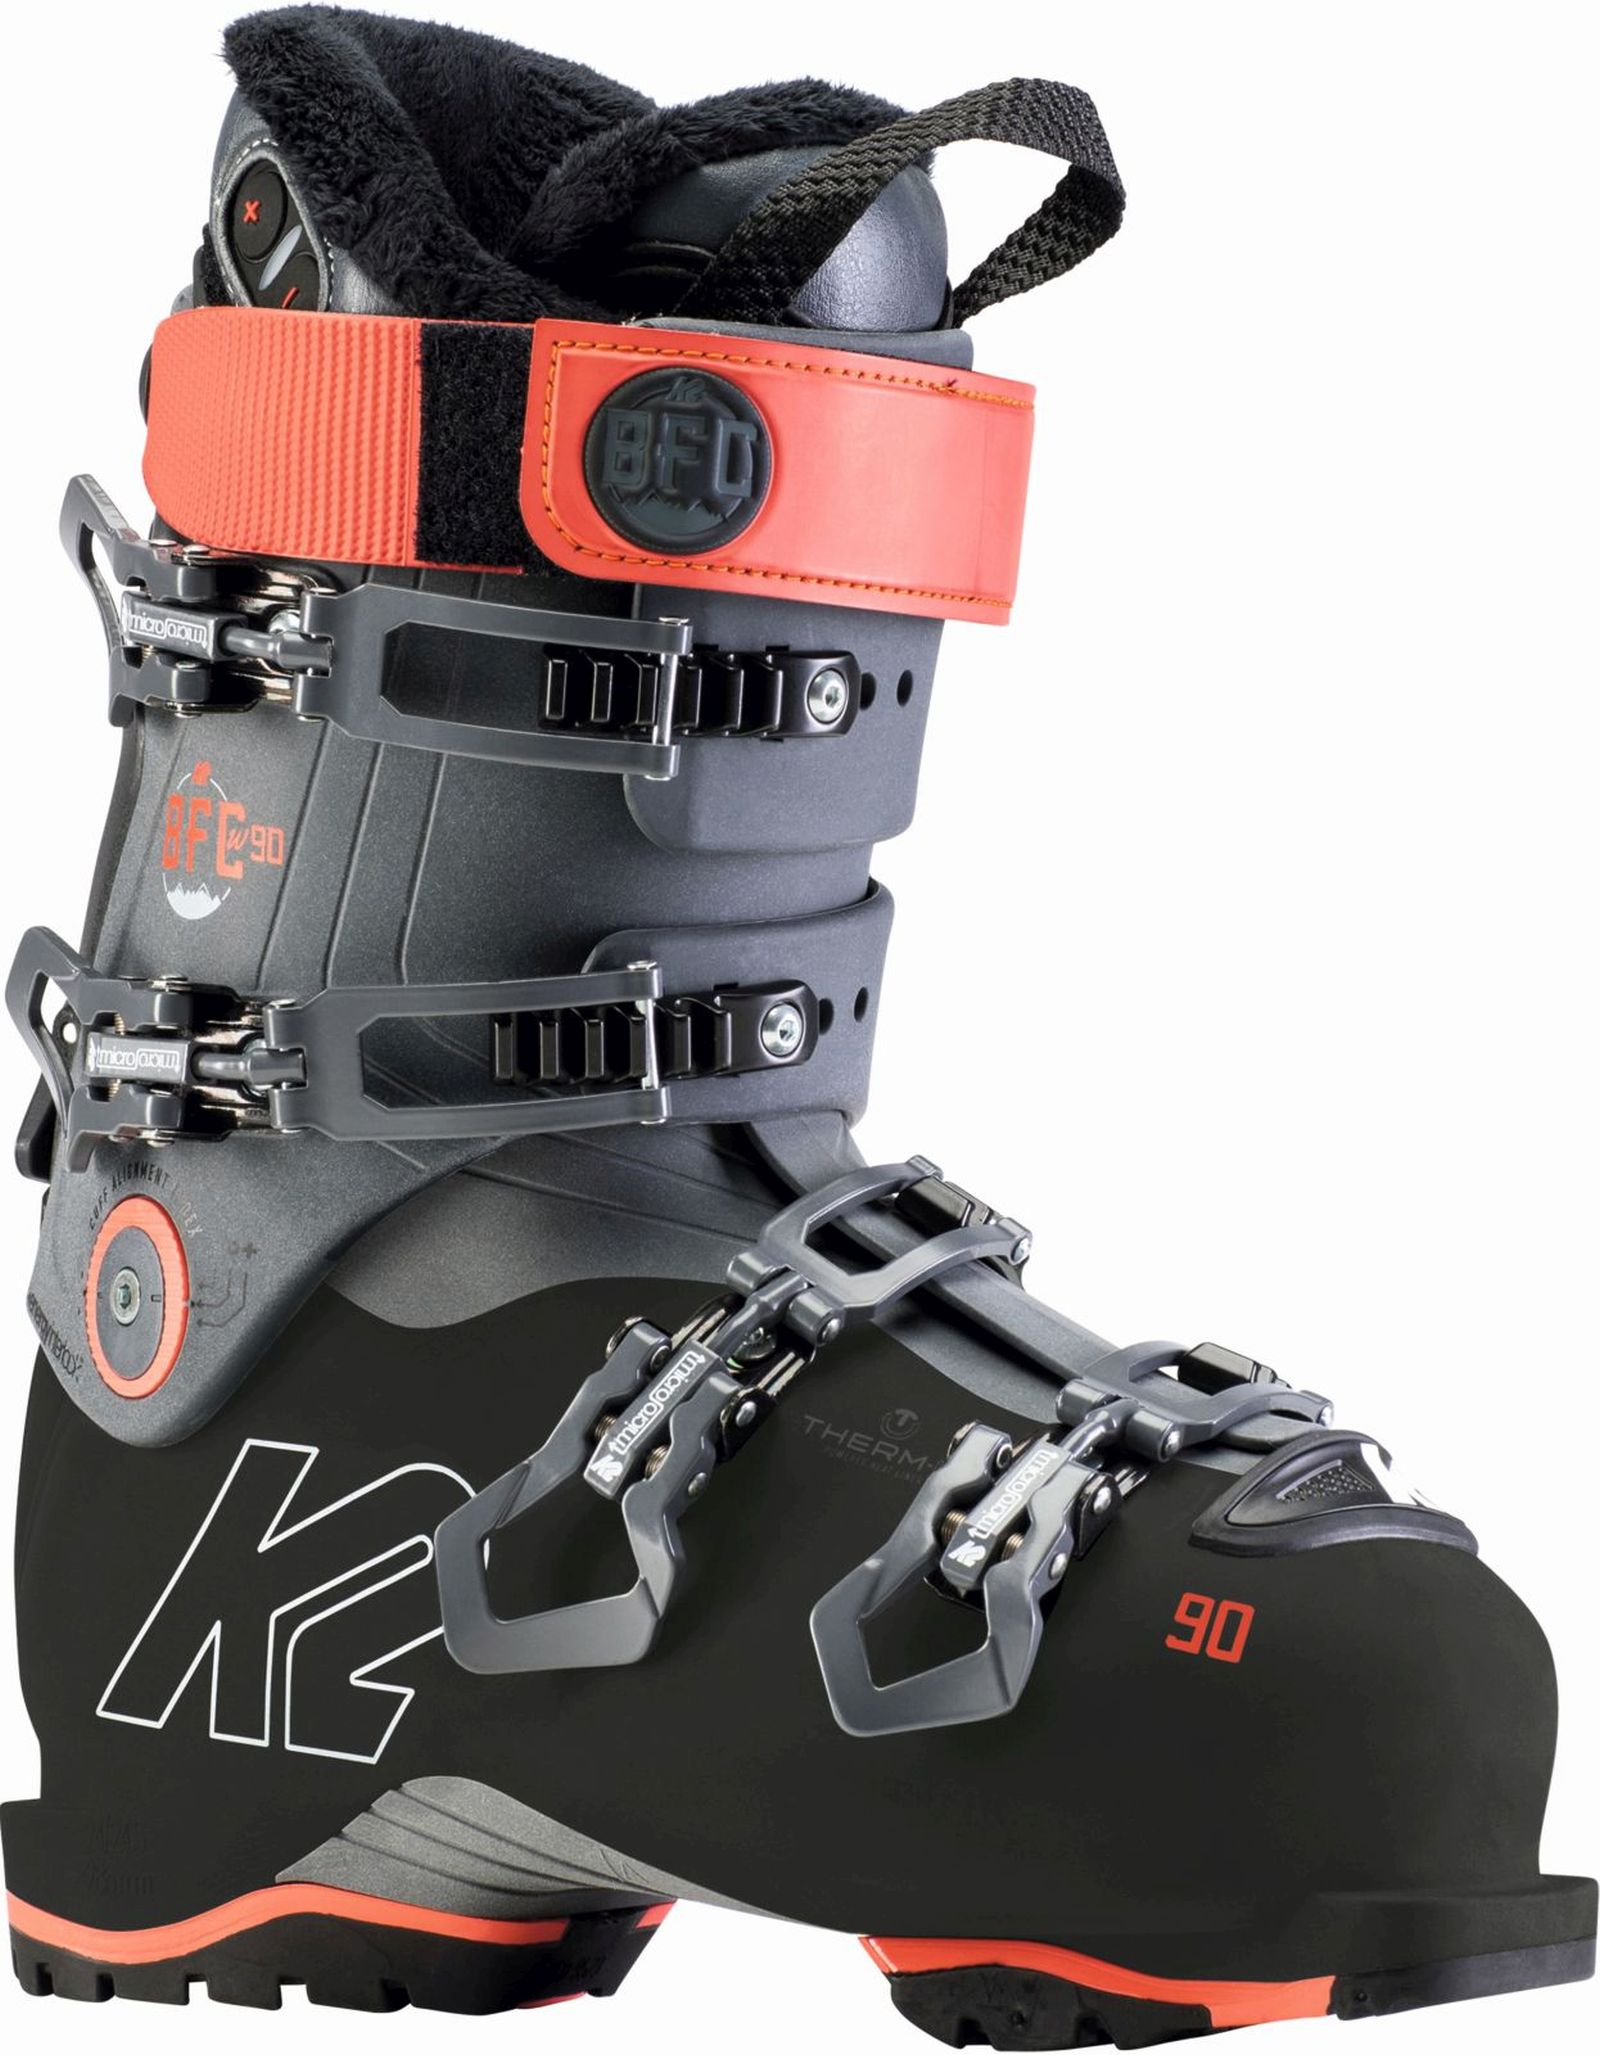 K2 BFC W 90 Heat Gripwalk 245